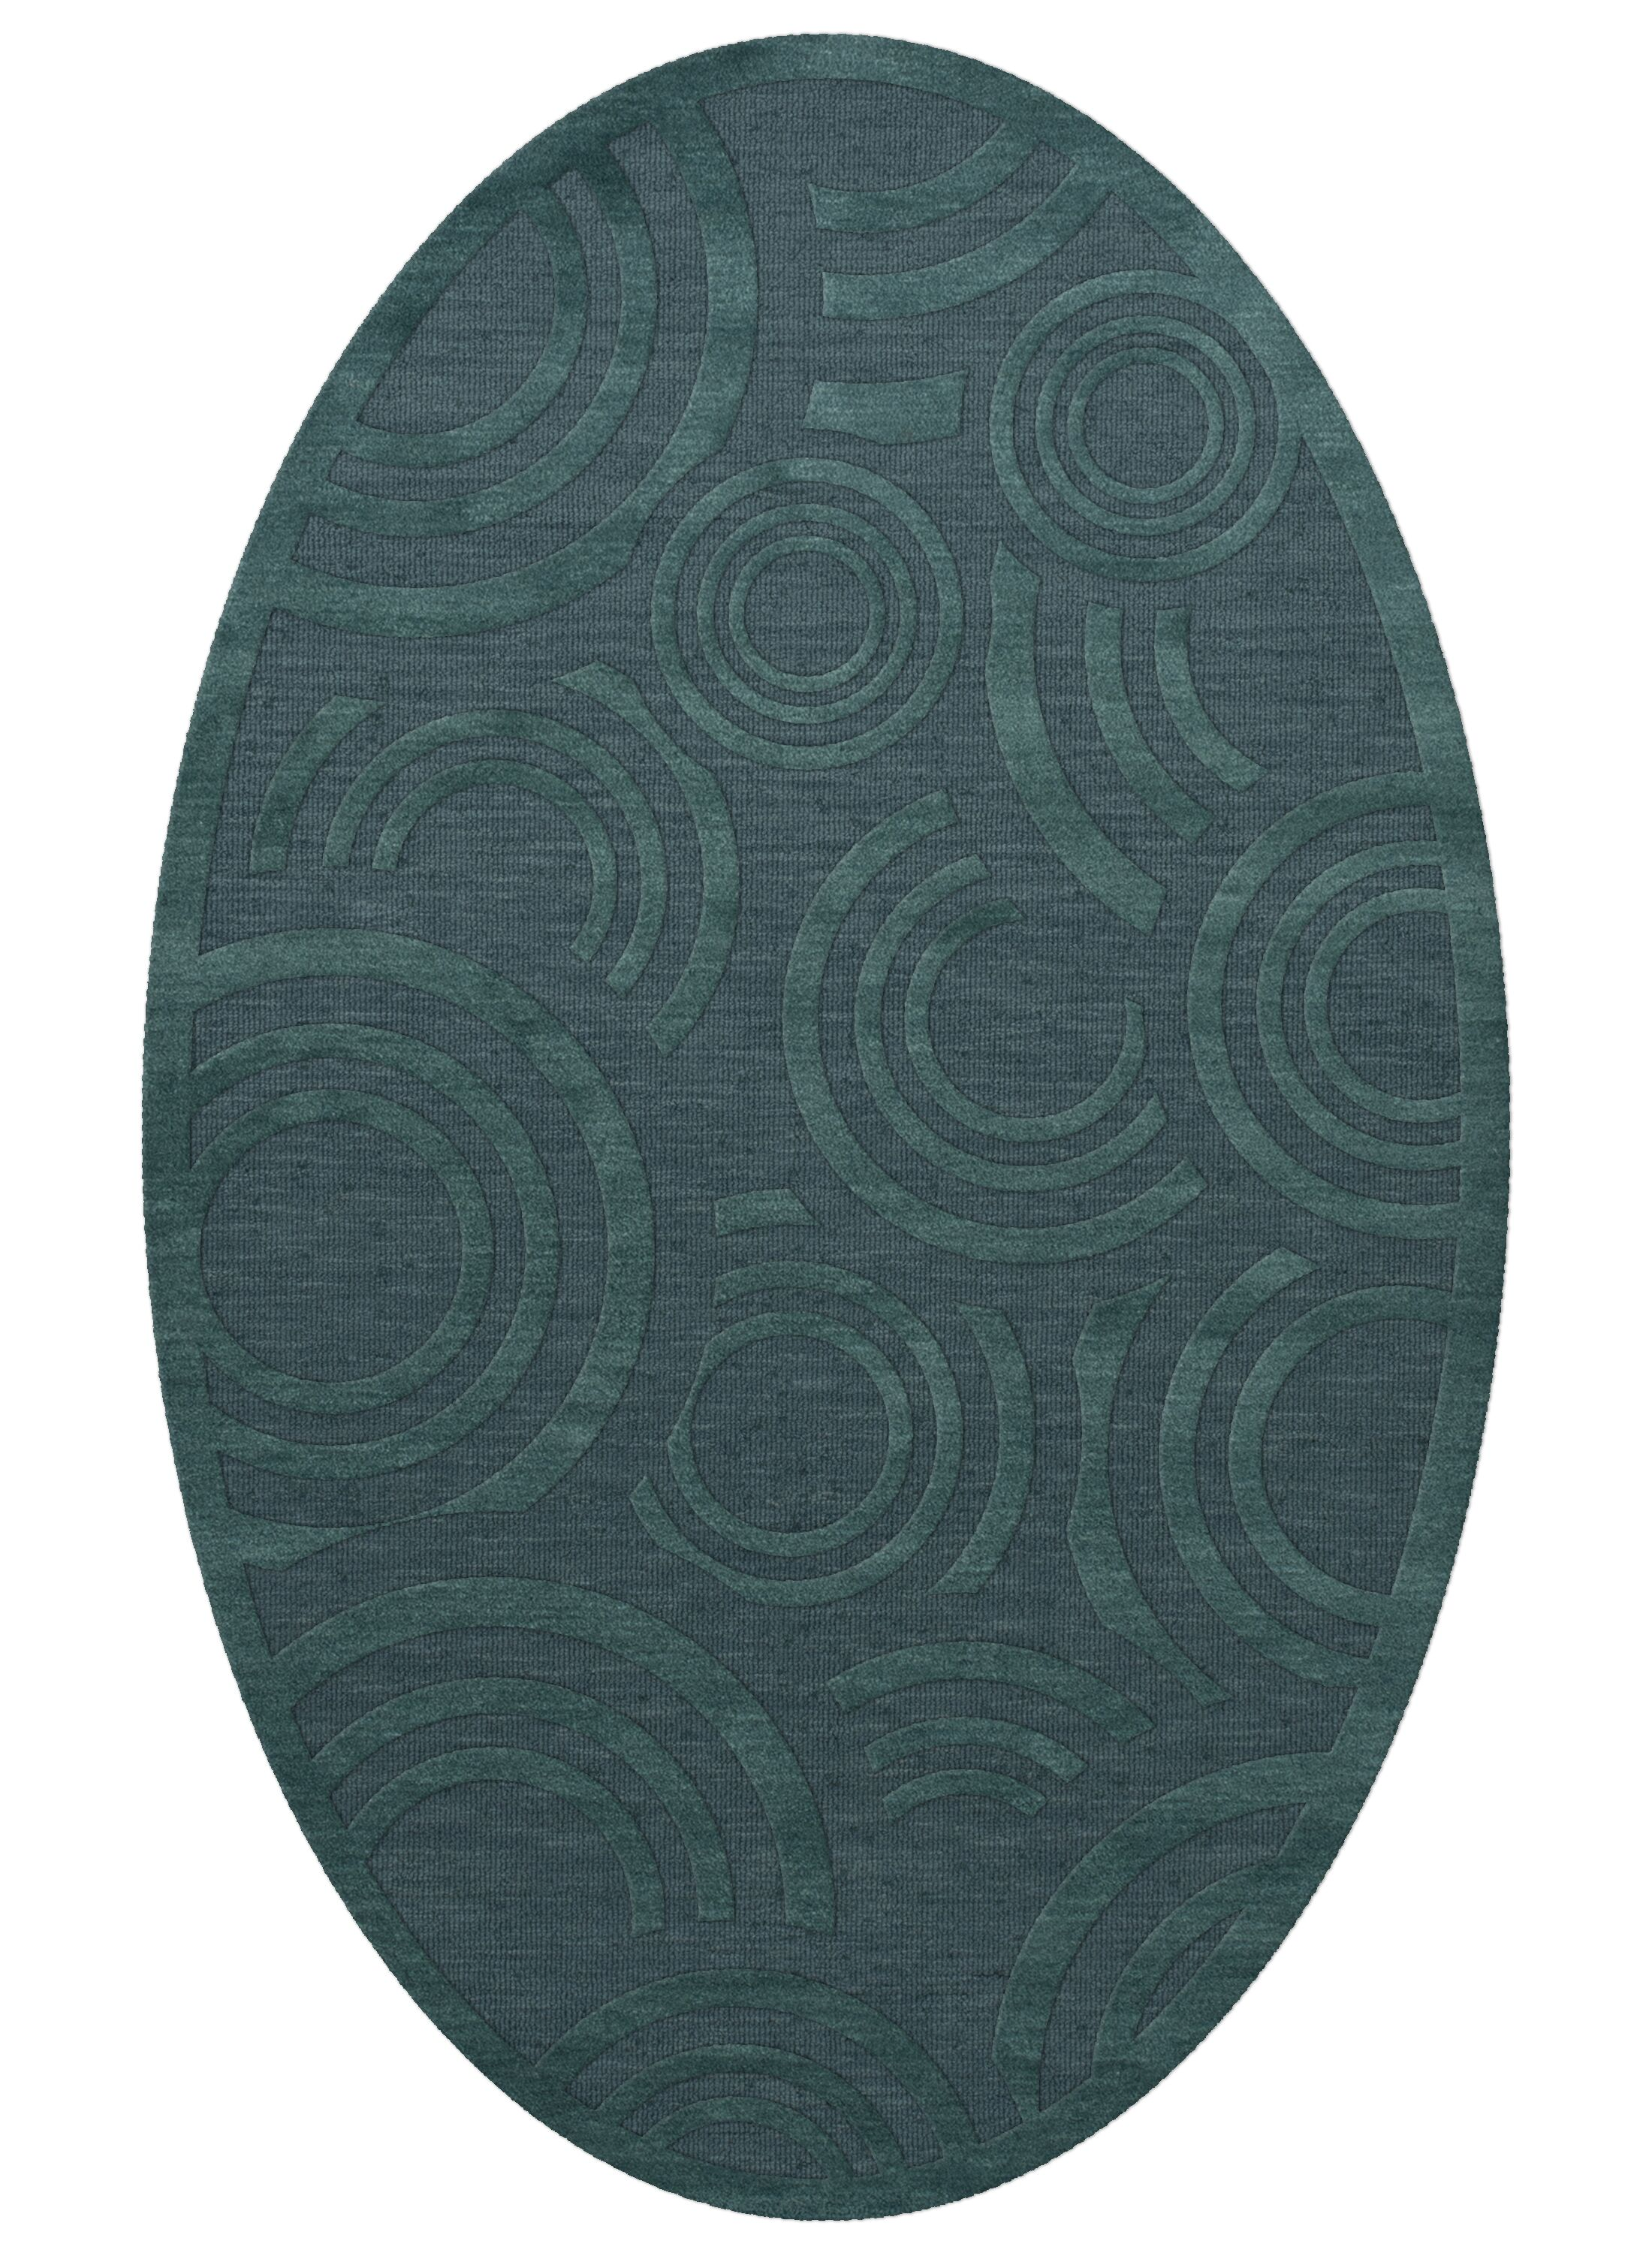 Dover Tufted Wool Teal Area Rug Rug Size: Oval 9' x 12'